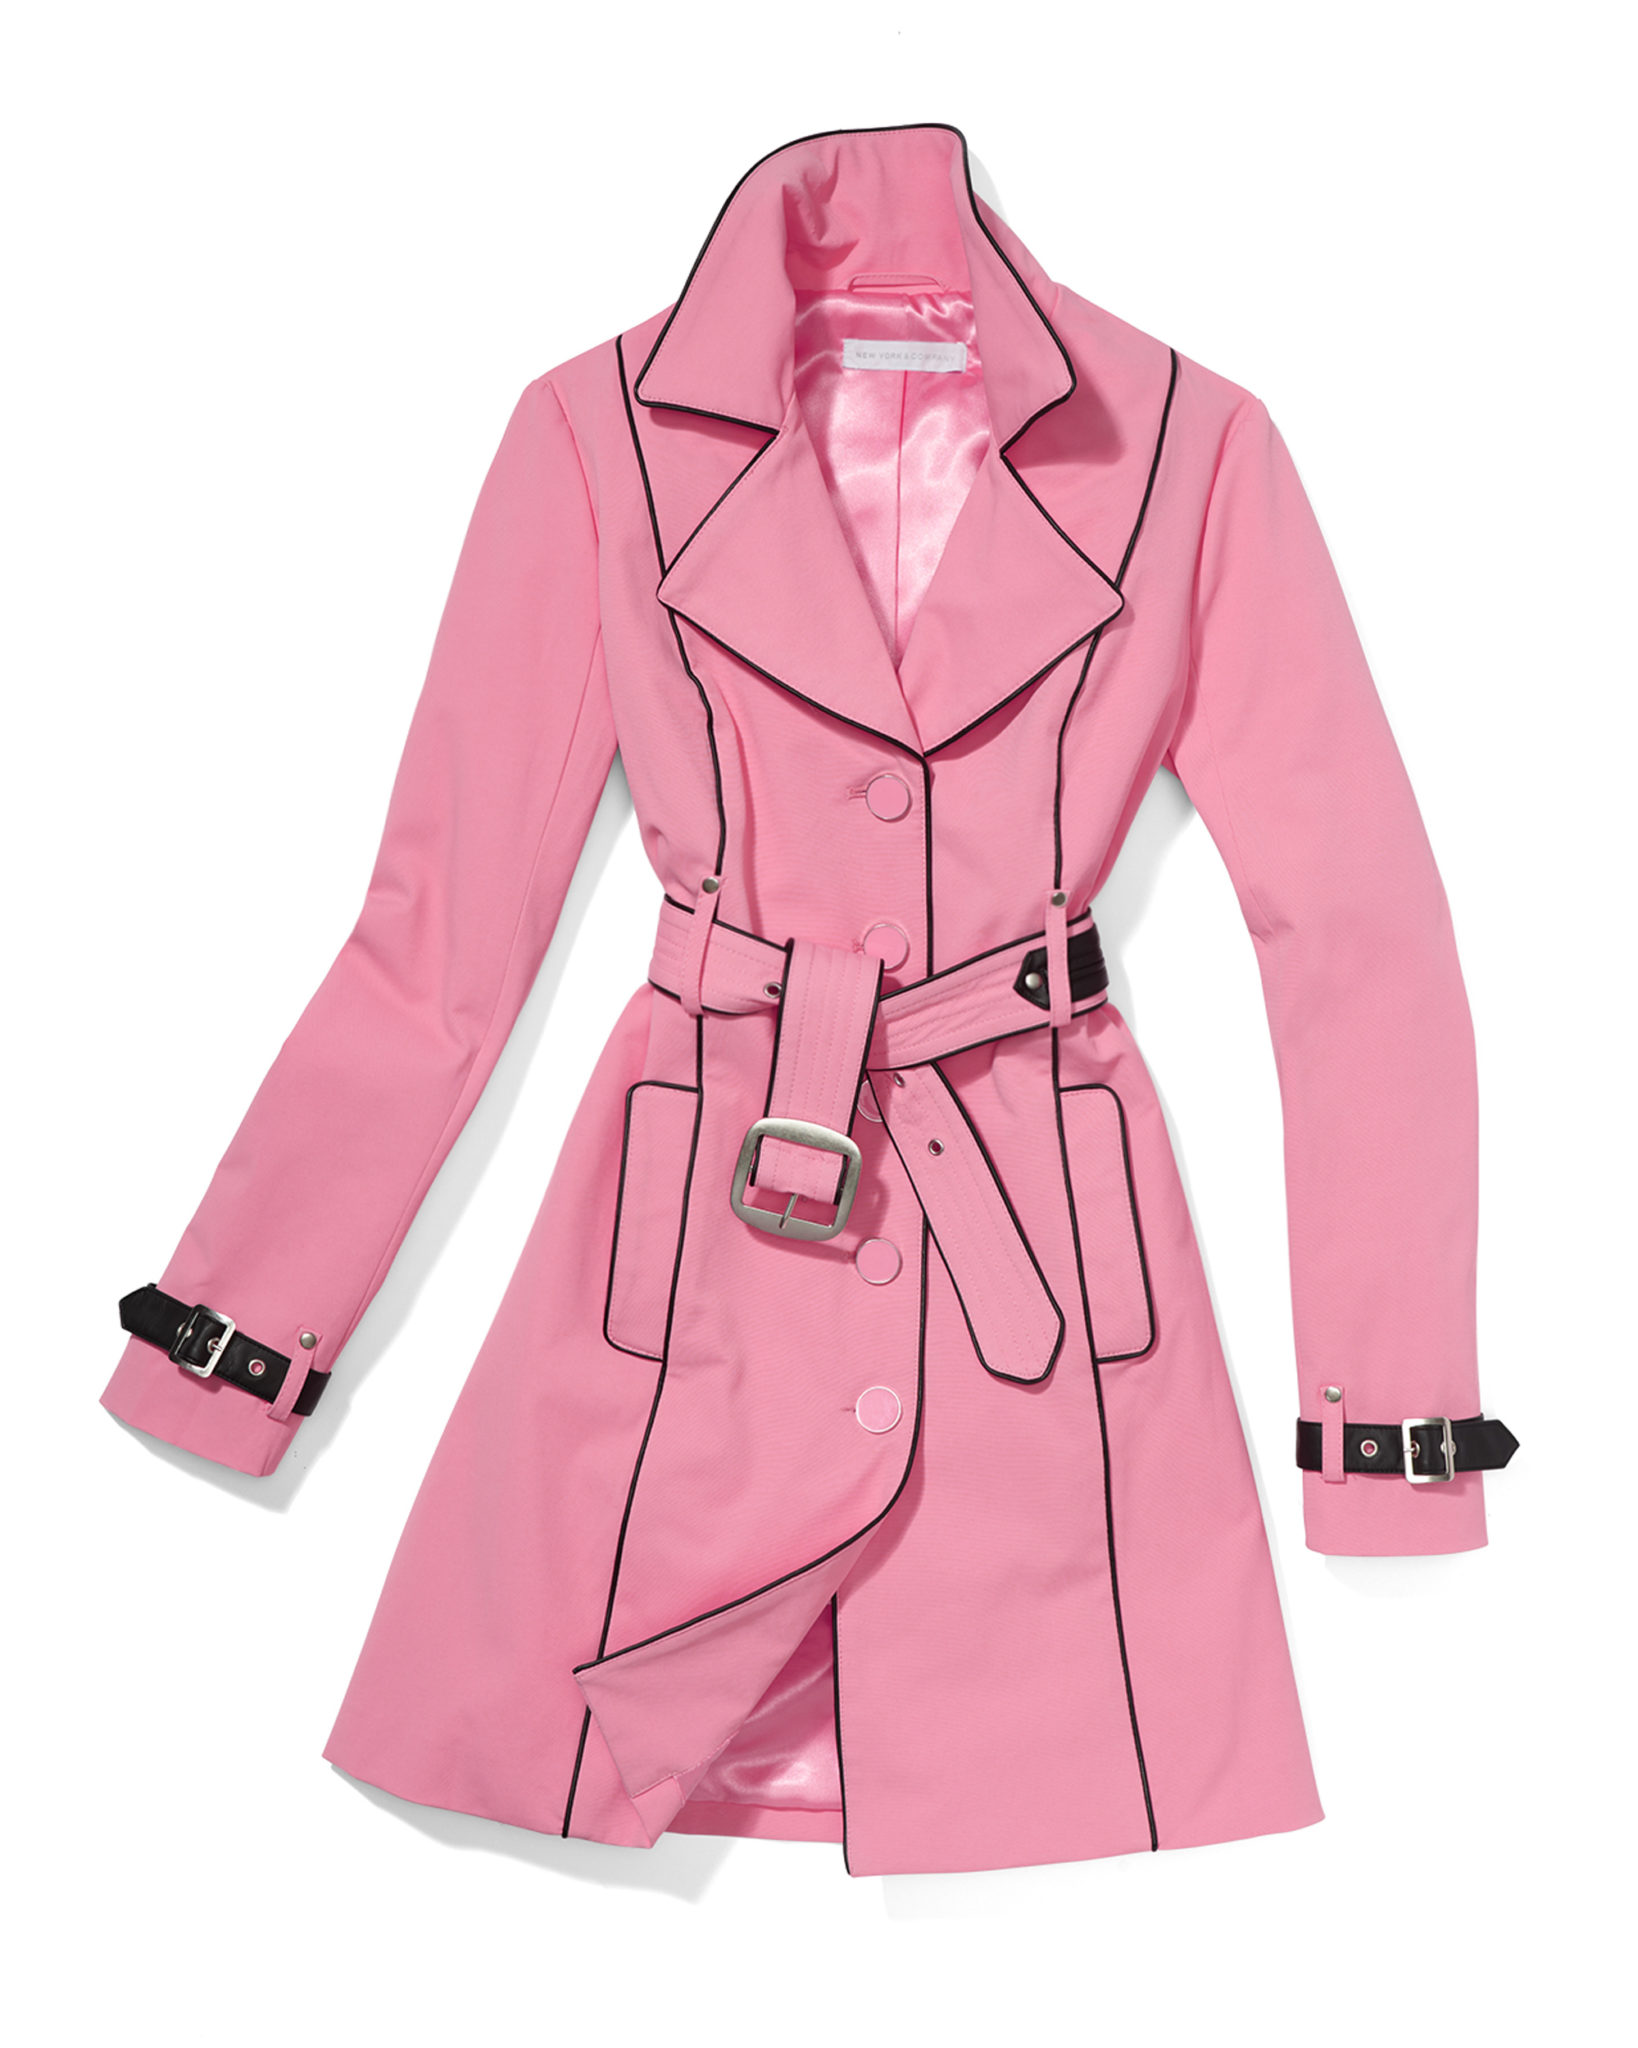 a product photograph of a pink trench coat with soft styling on white